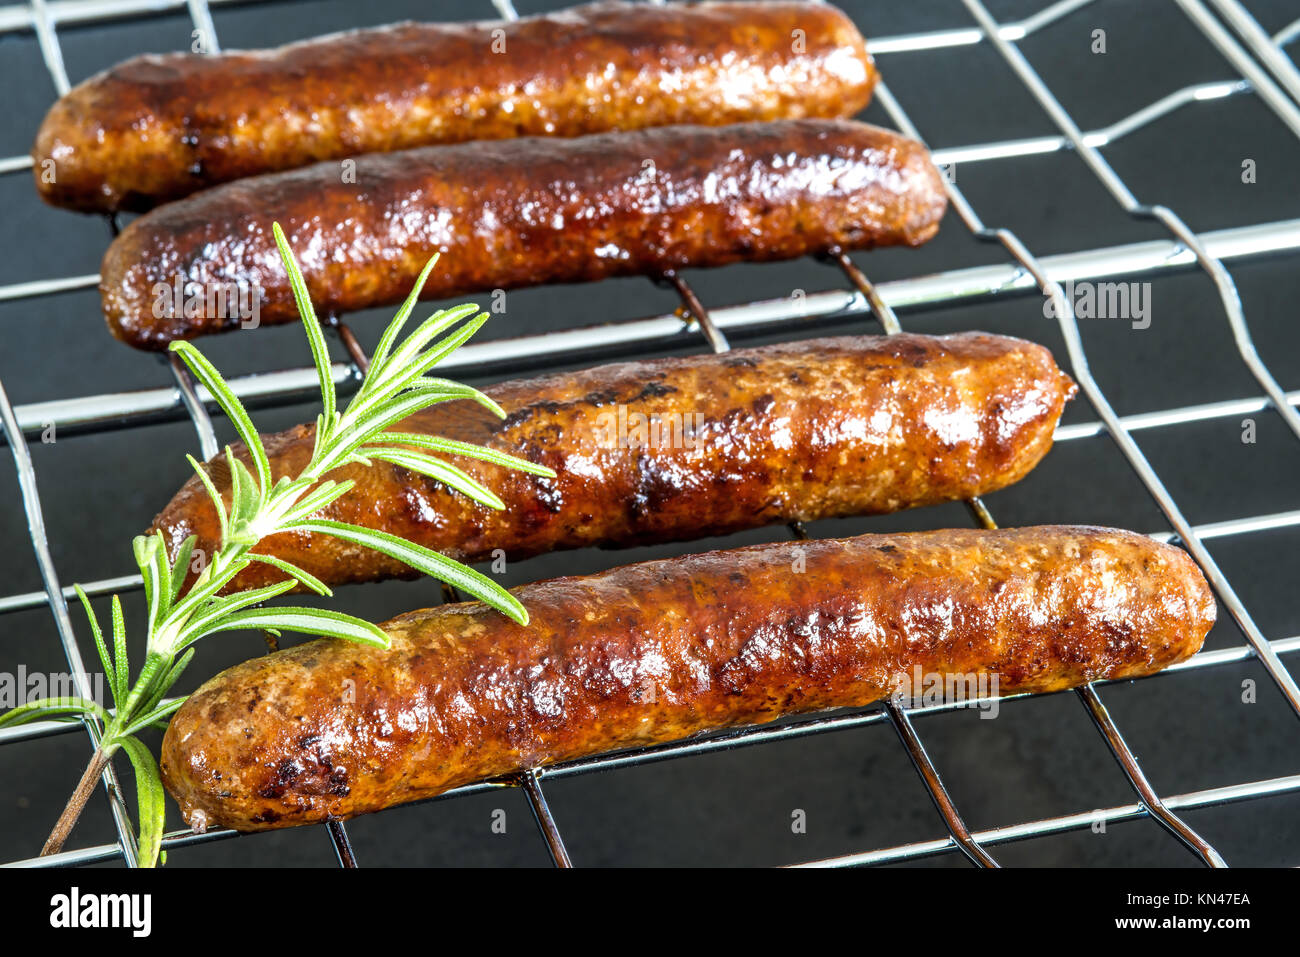 Merguez, North-African sausage, roasted. - Stock Image